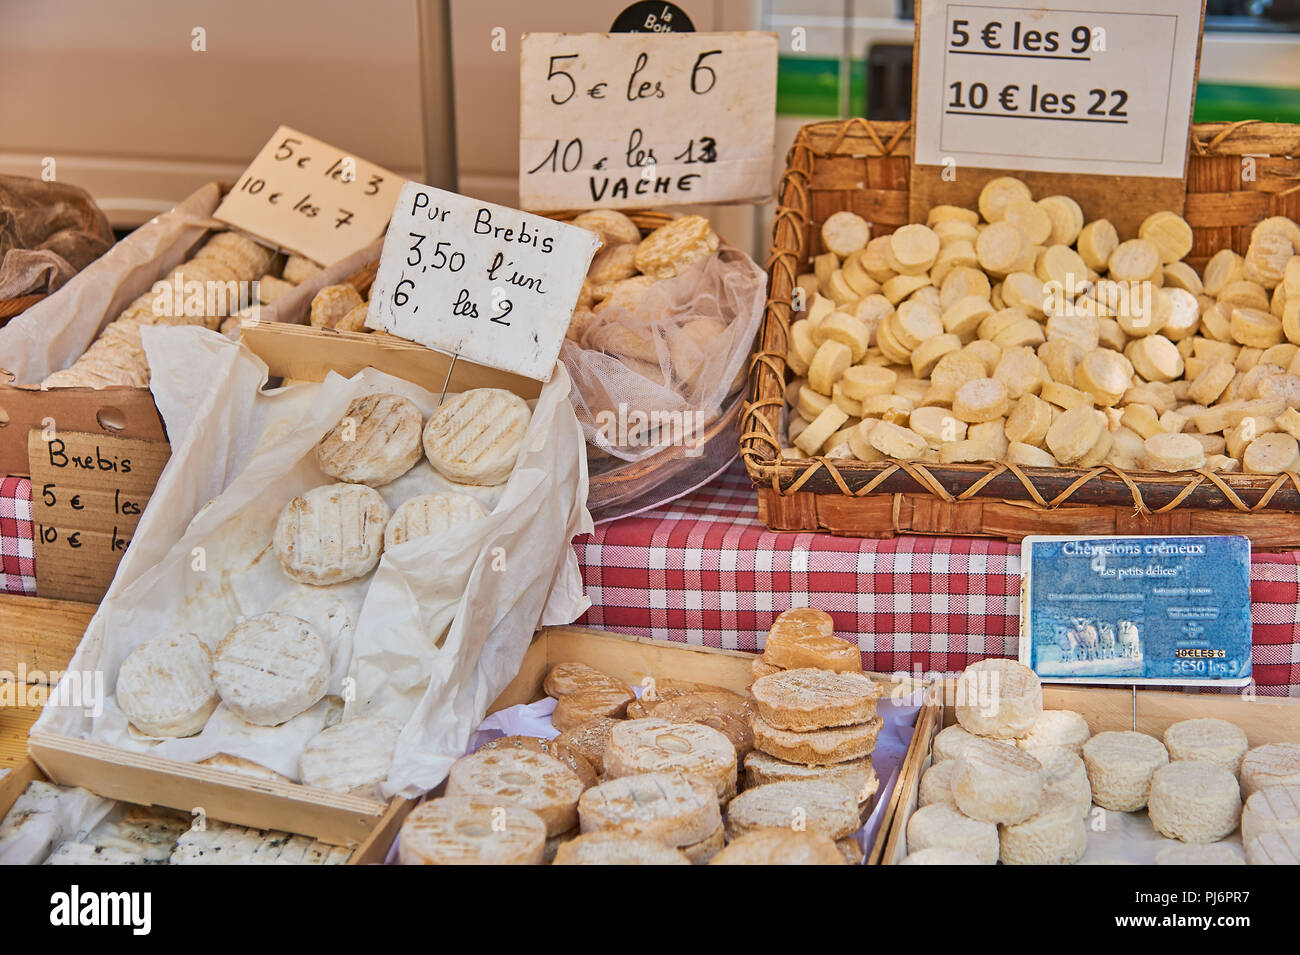 Lamastre, Ardeche, Rhone Alps, France and a market stall selling locally produced cheeses. Stock Photo